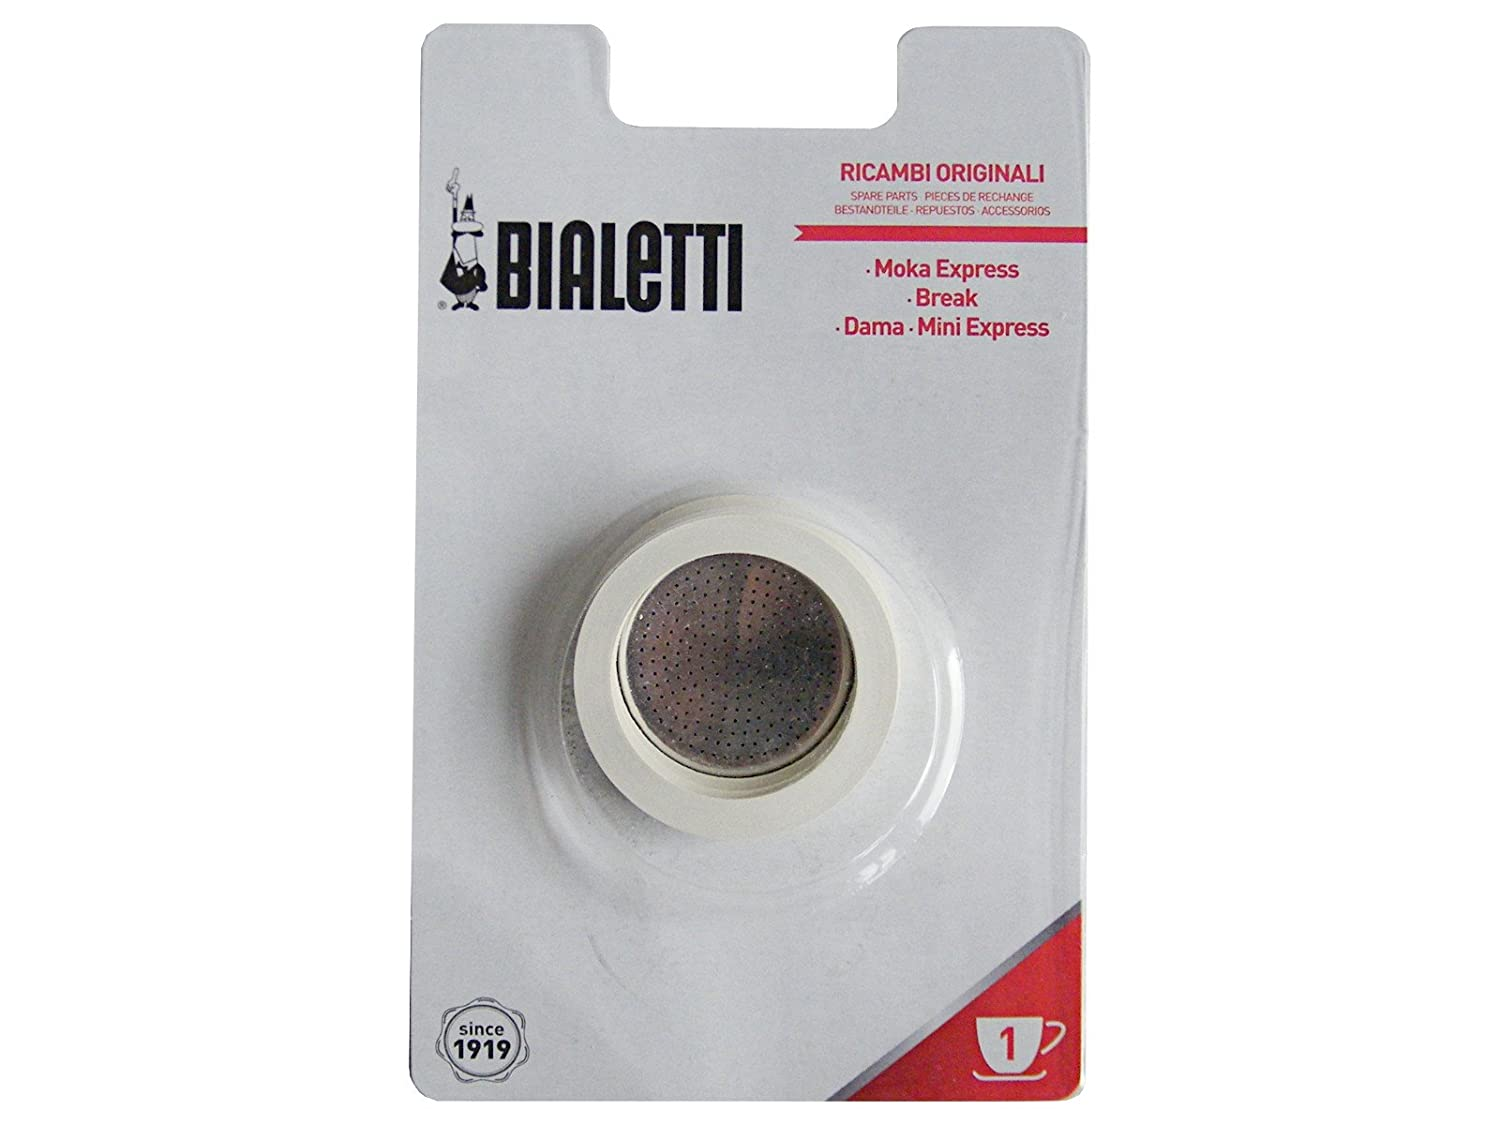 Bialetti Replacement Gaskets and Filter for 1 Cup Moka/Break / DAMA/Mini Express Espresso Makers 0800001